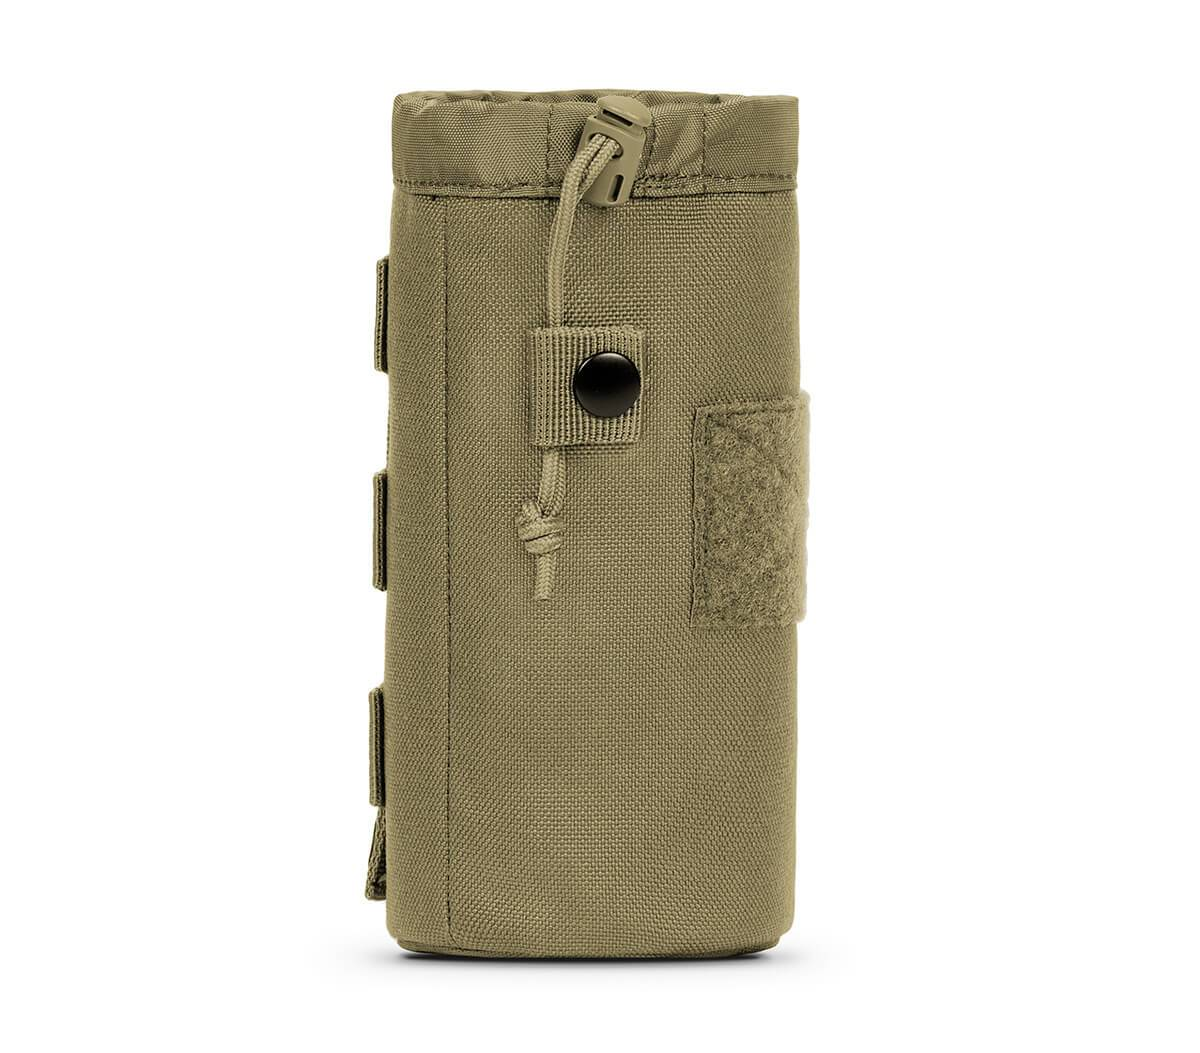 S.01 Insulated Bottle Holder